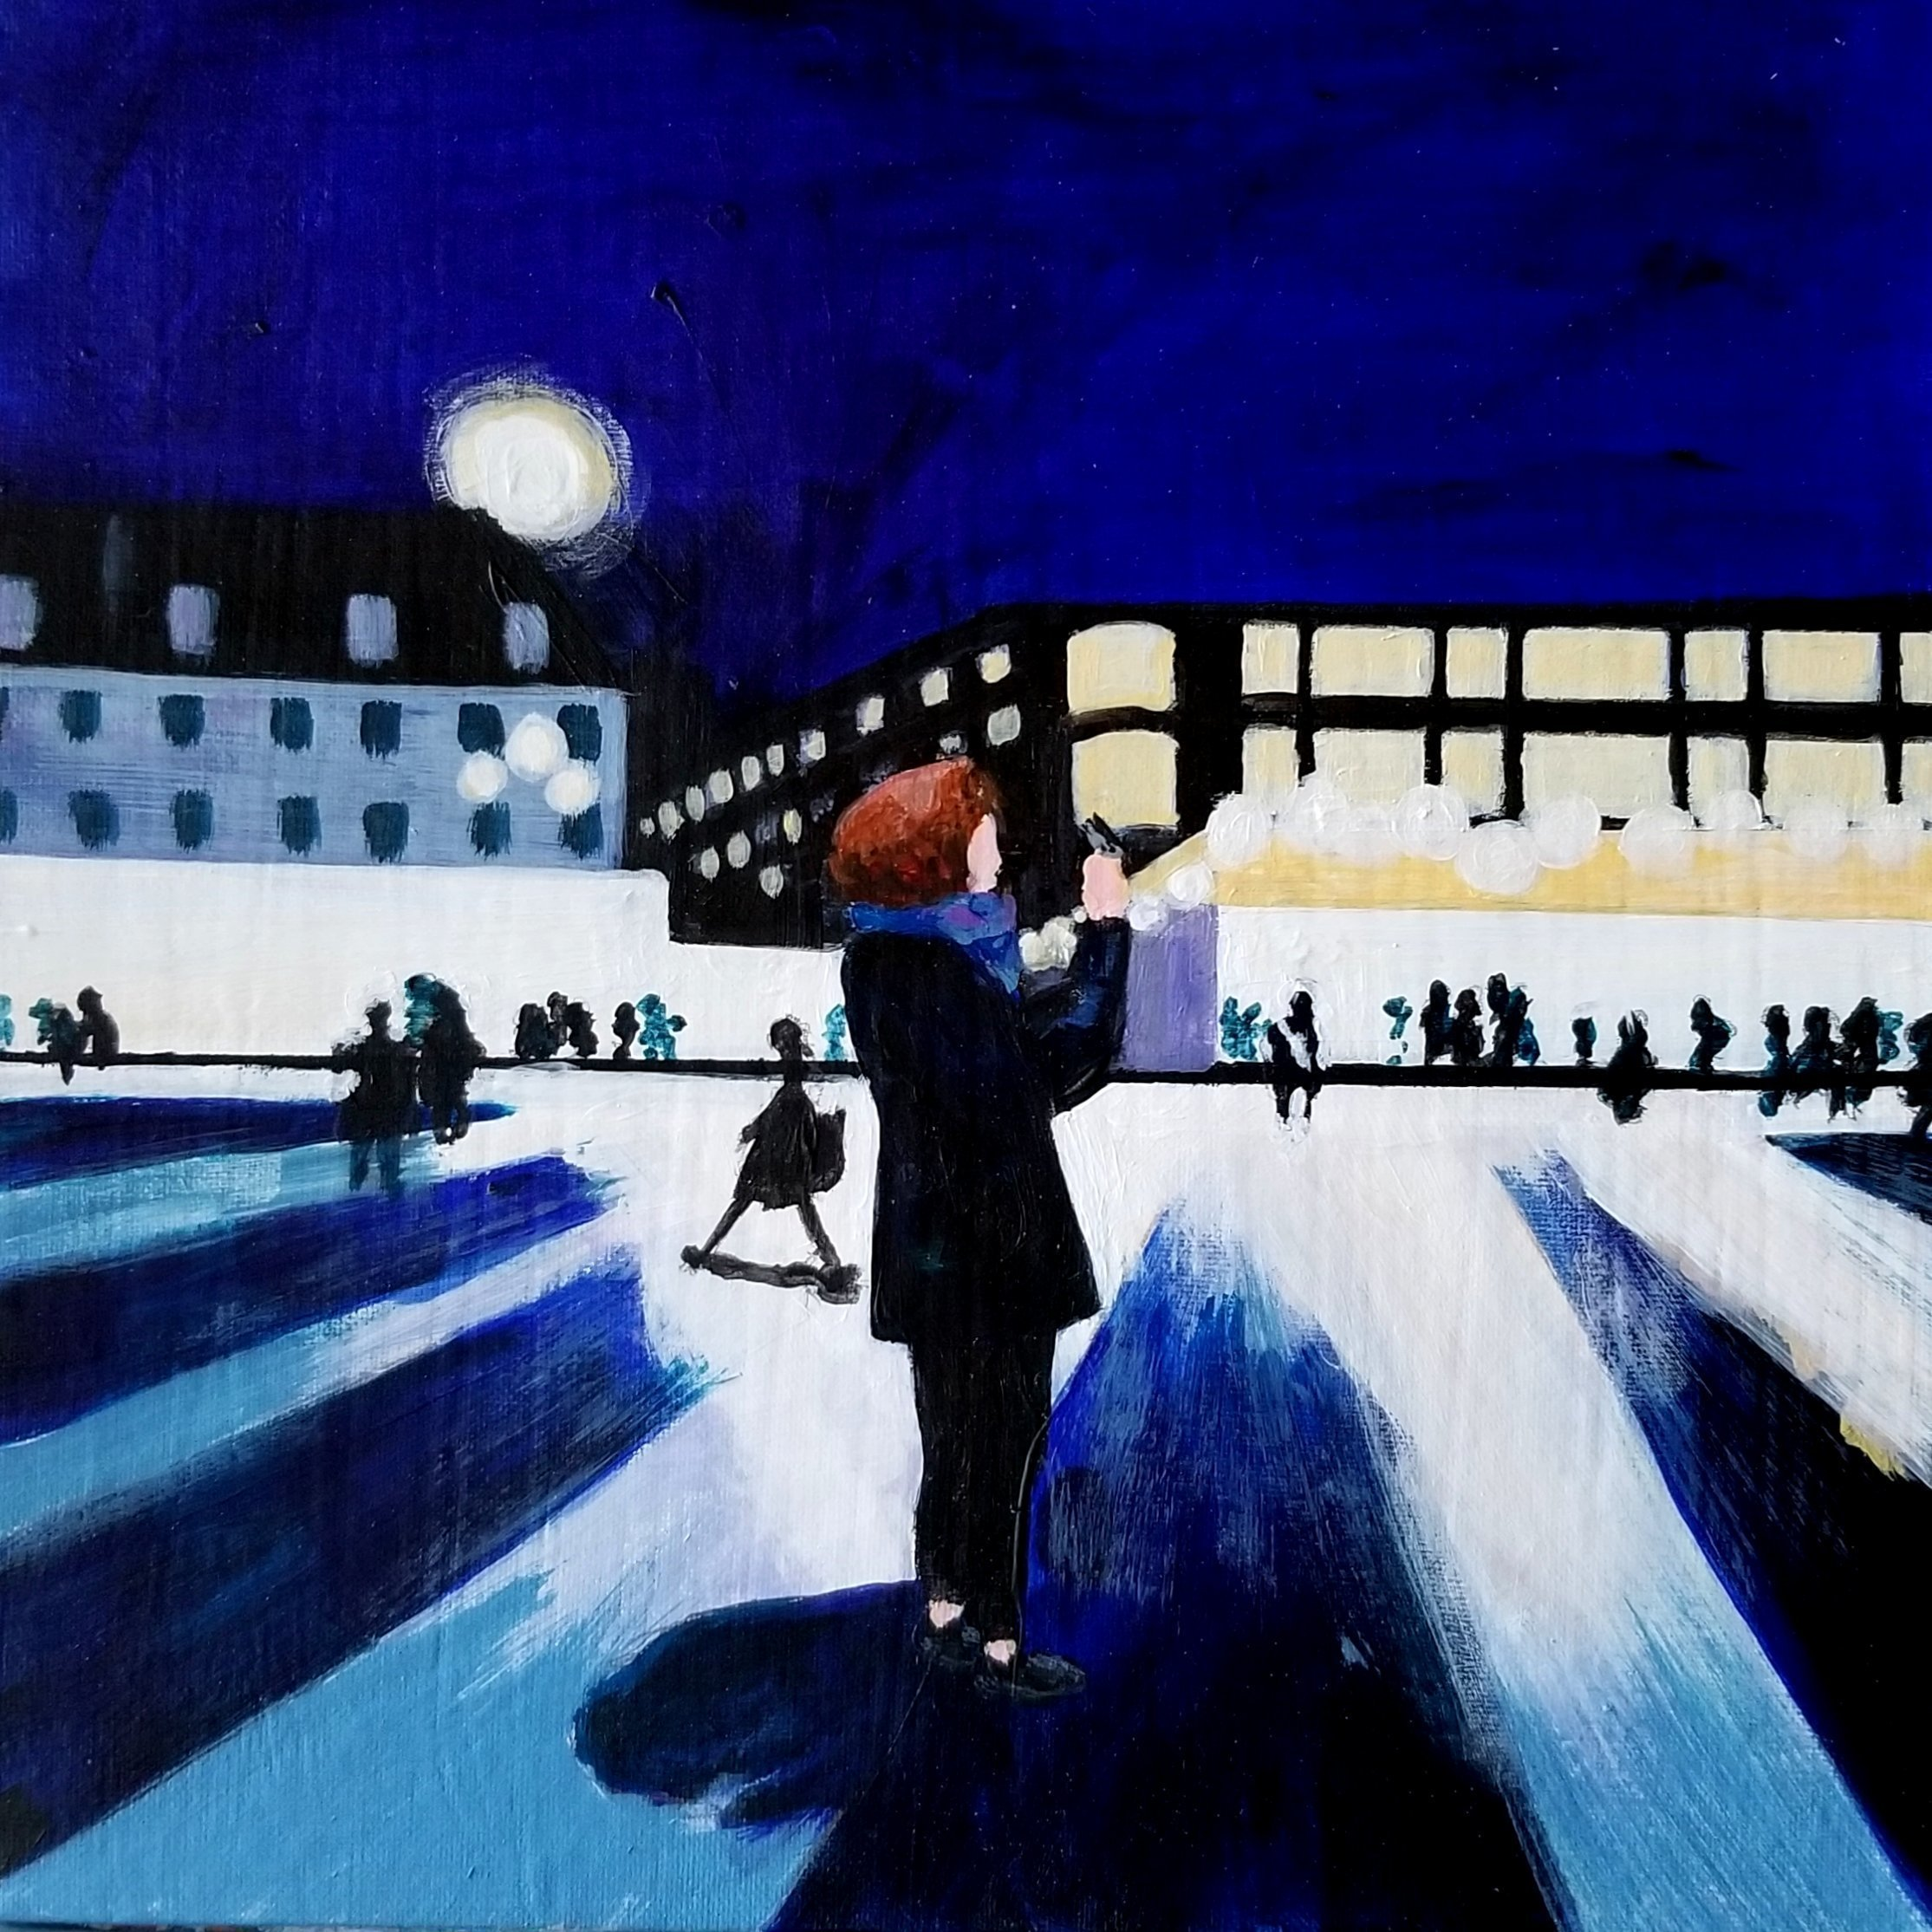 Denise Dalzell; Outside San Pancras, 2020, Original Painting Acrylic, 11 x 11 inches. Artwork description: 241 A nighttime scene at San Pancras Station, London...